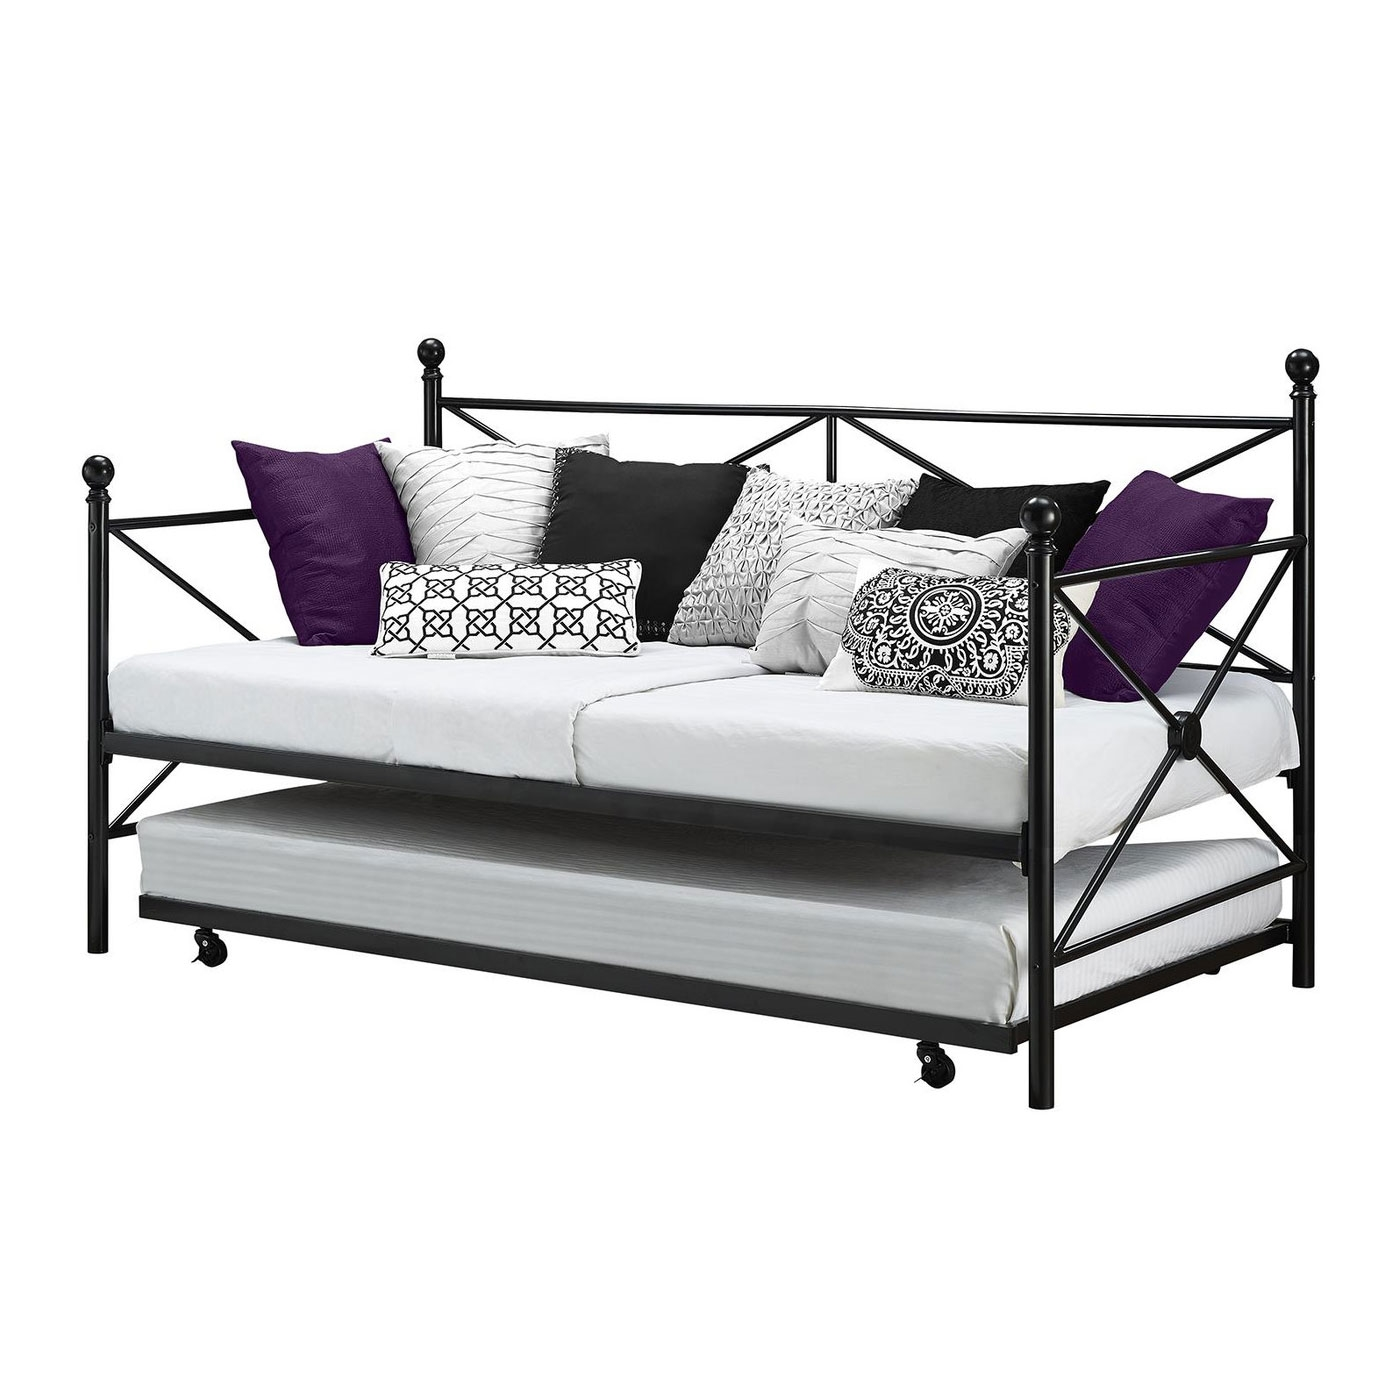 Twin Size Black Metal Day Bed Frame And Roll Out Trundle Set Fastfurnishings Com